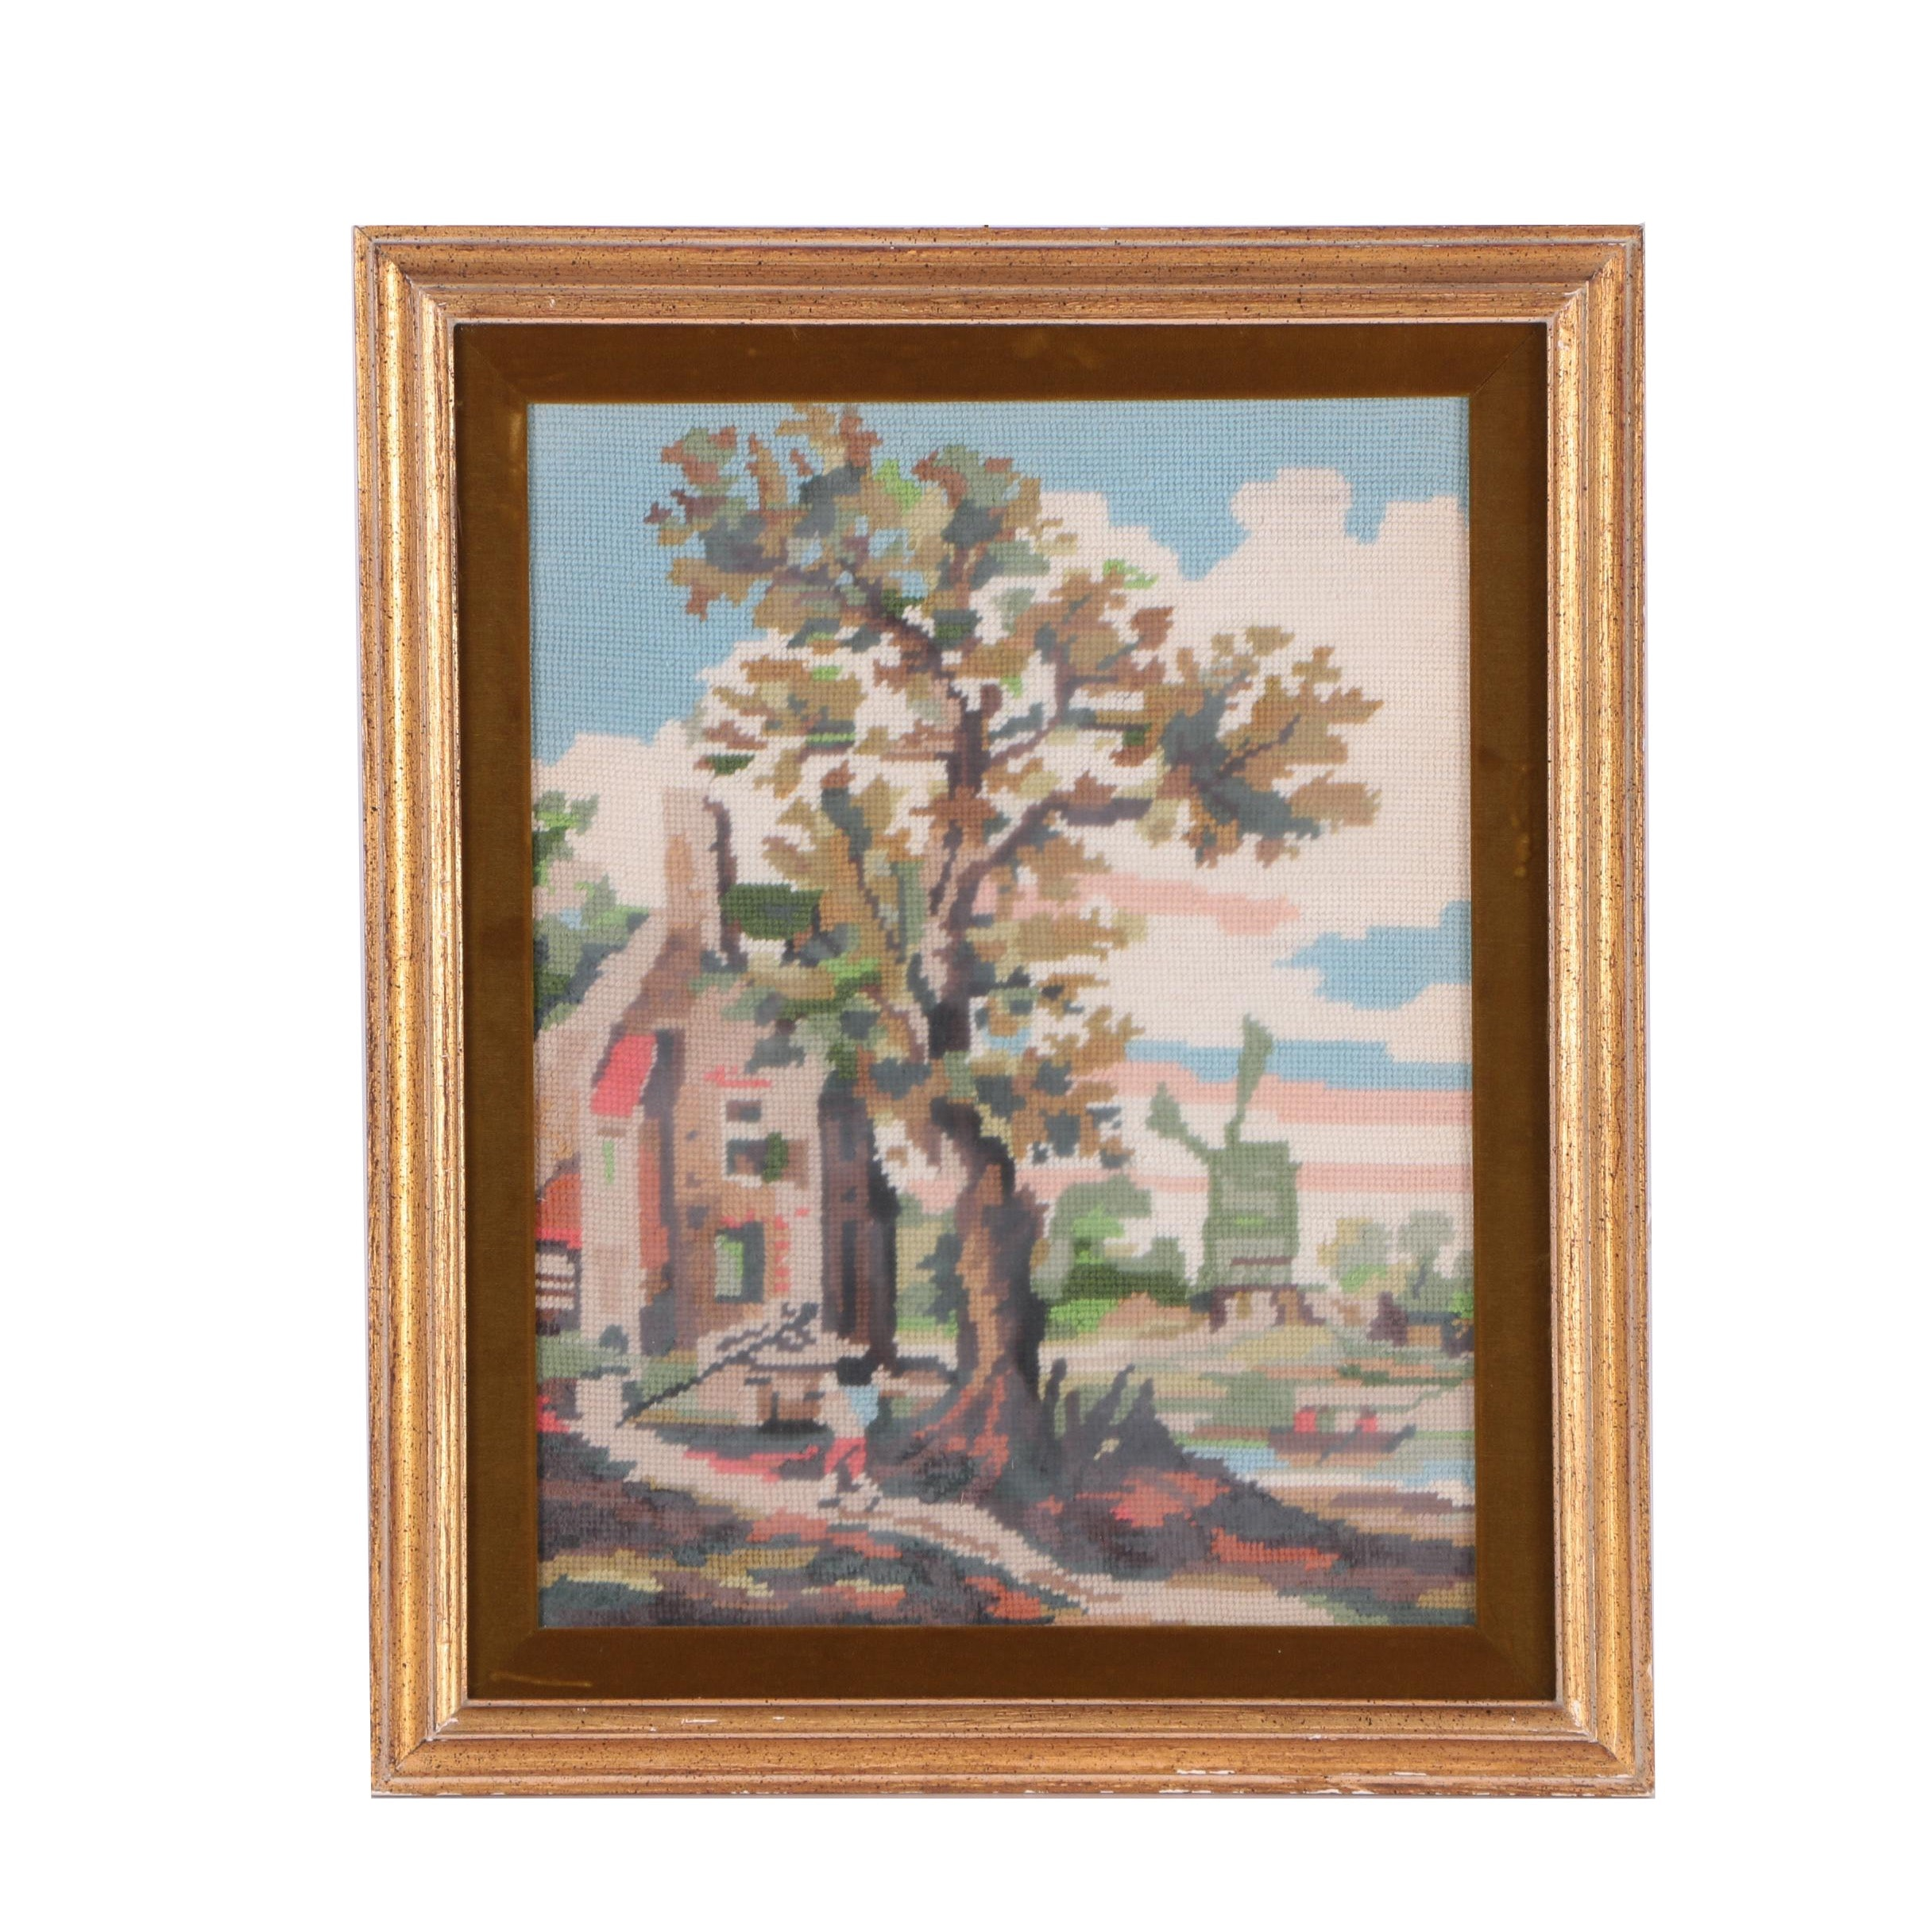 Needlepoint Embroidery of Rural Landscape